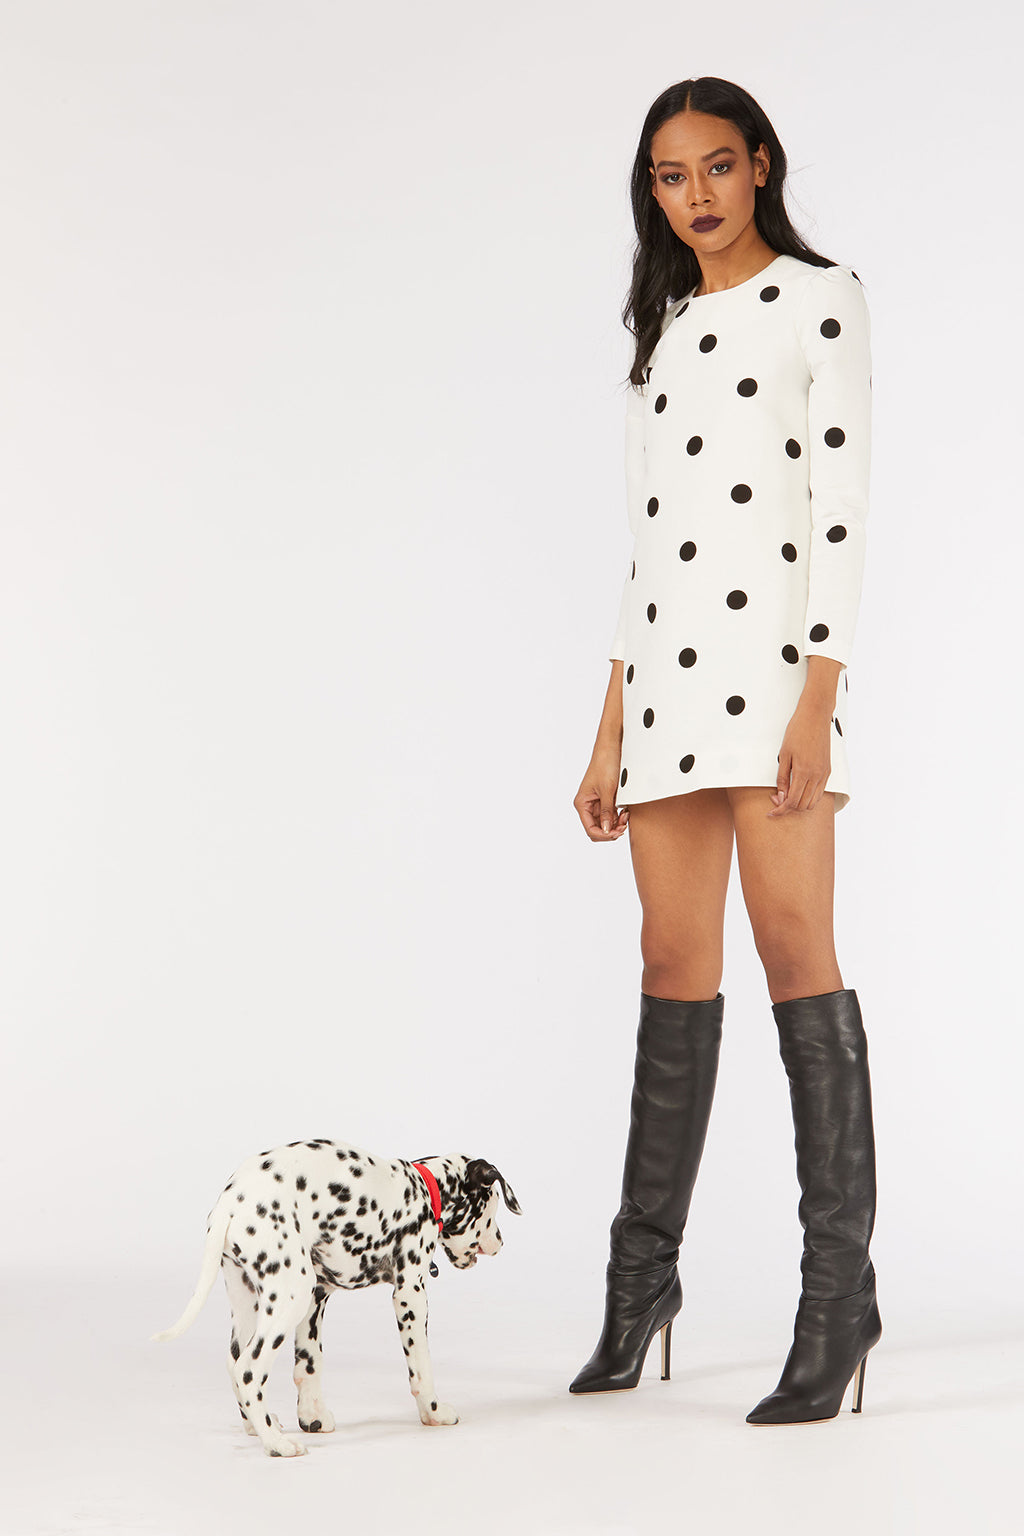 Cynthia Rowley Fall 2018 look 24 featuring a black and white polka dot long sleeve mini dress.